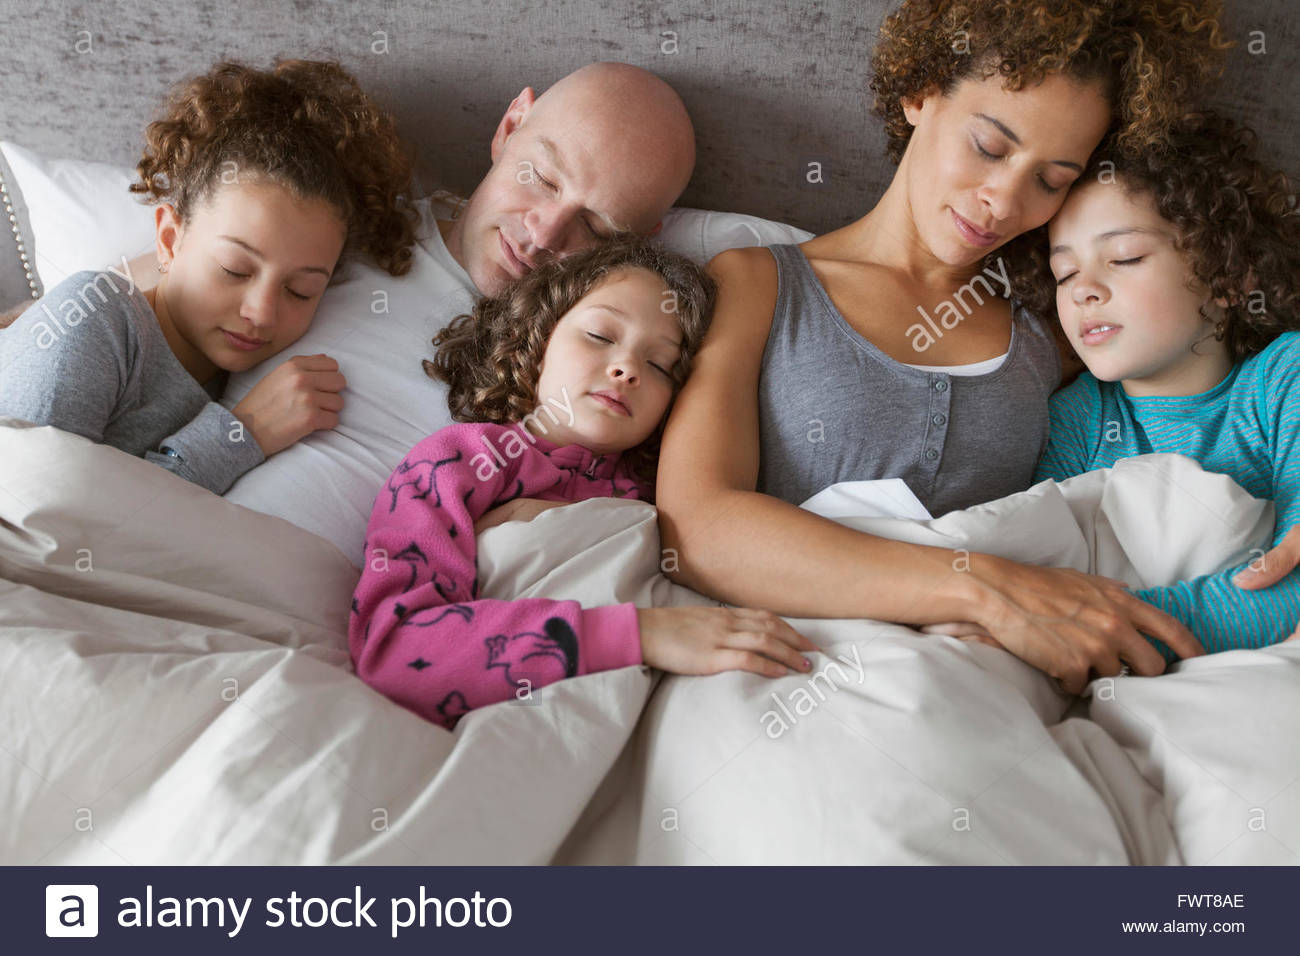 Famille de cinq dormir paisiblement ensemble. Photo Stock